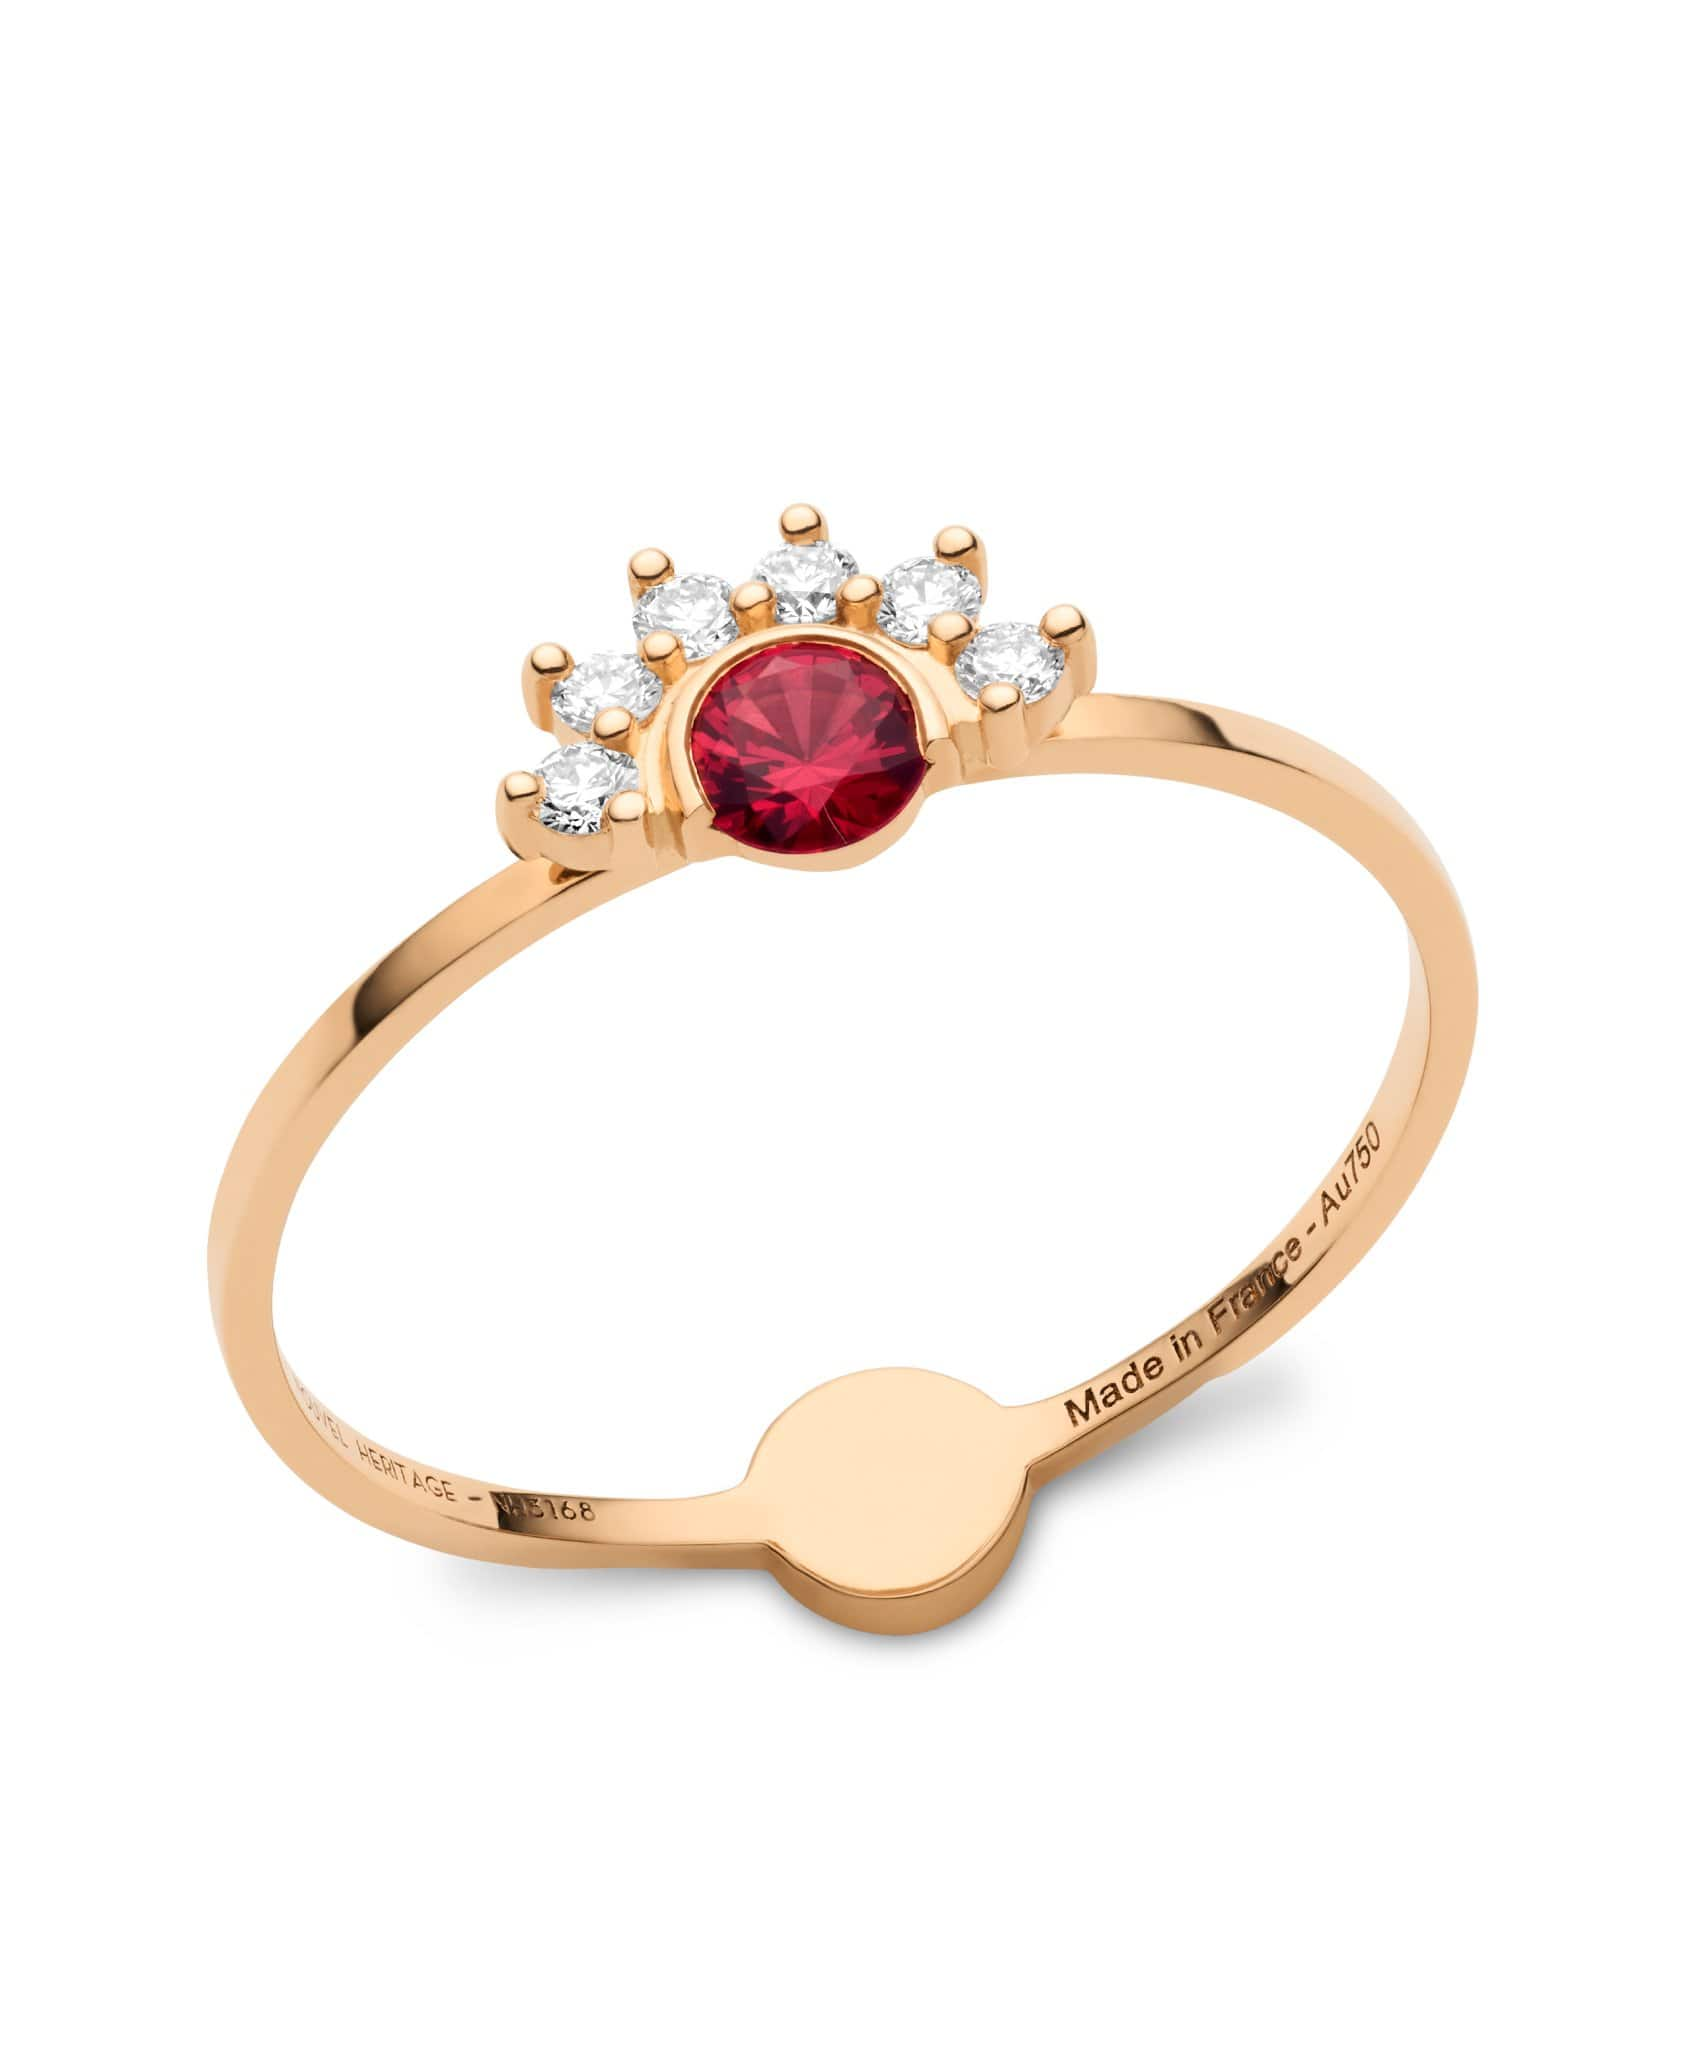 Red Spinel Ring: Discover Luxury Fine Jewelry | Nouvel Heritage || Rose Gold